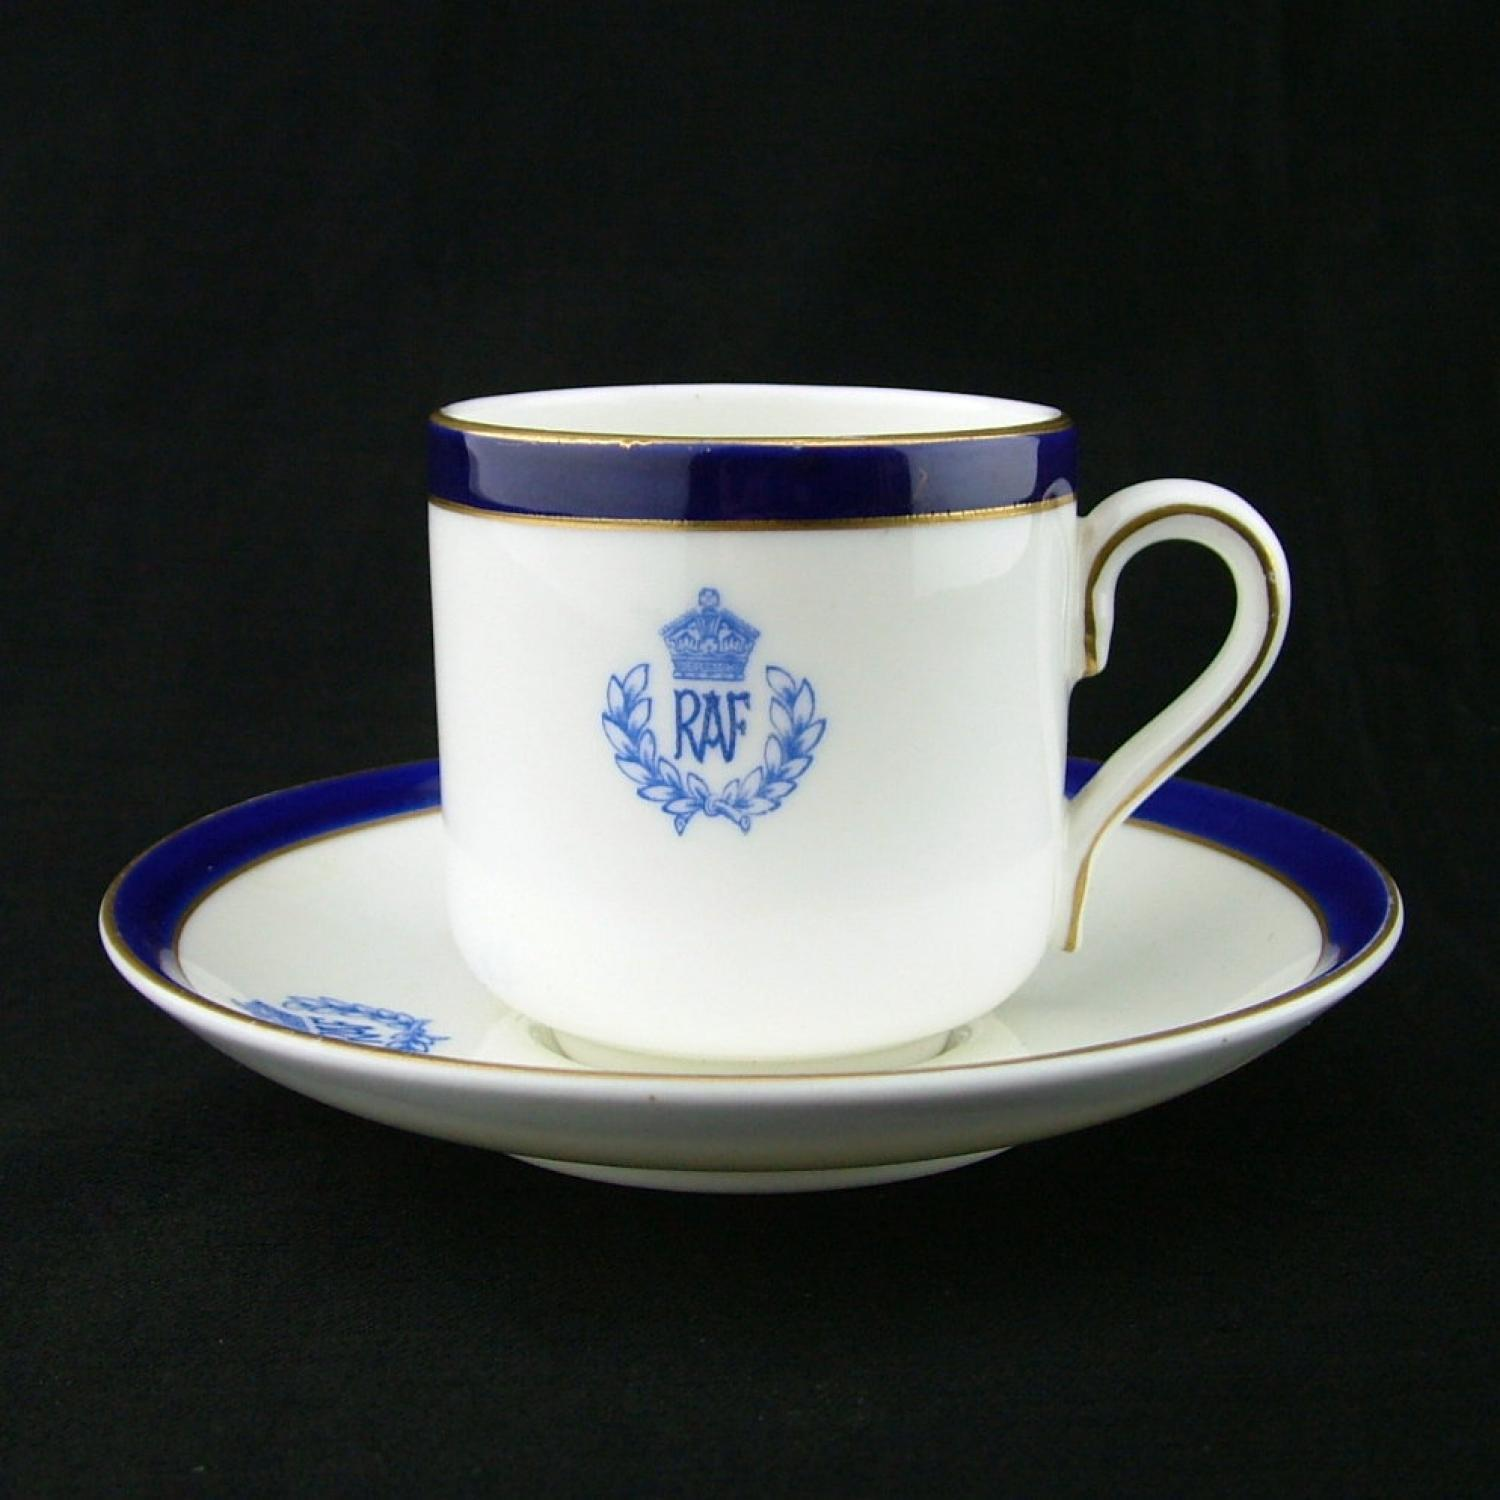 RAF Mess Coffee Cup & Saucer